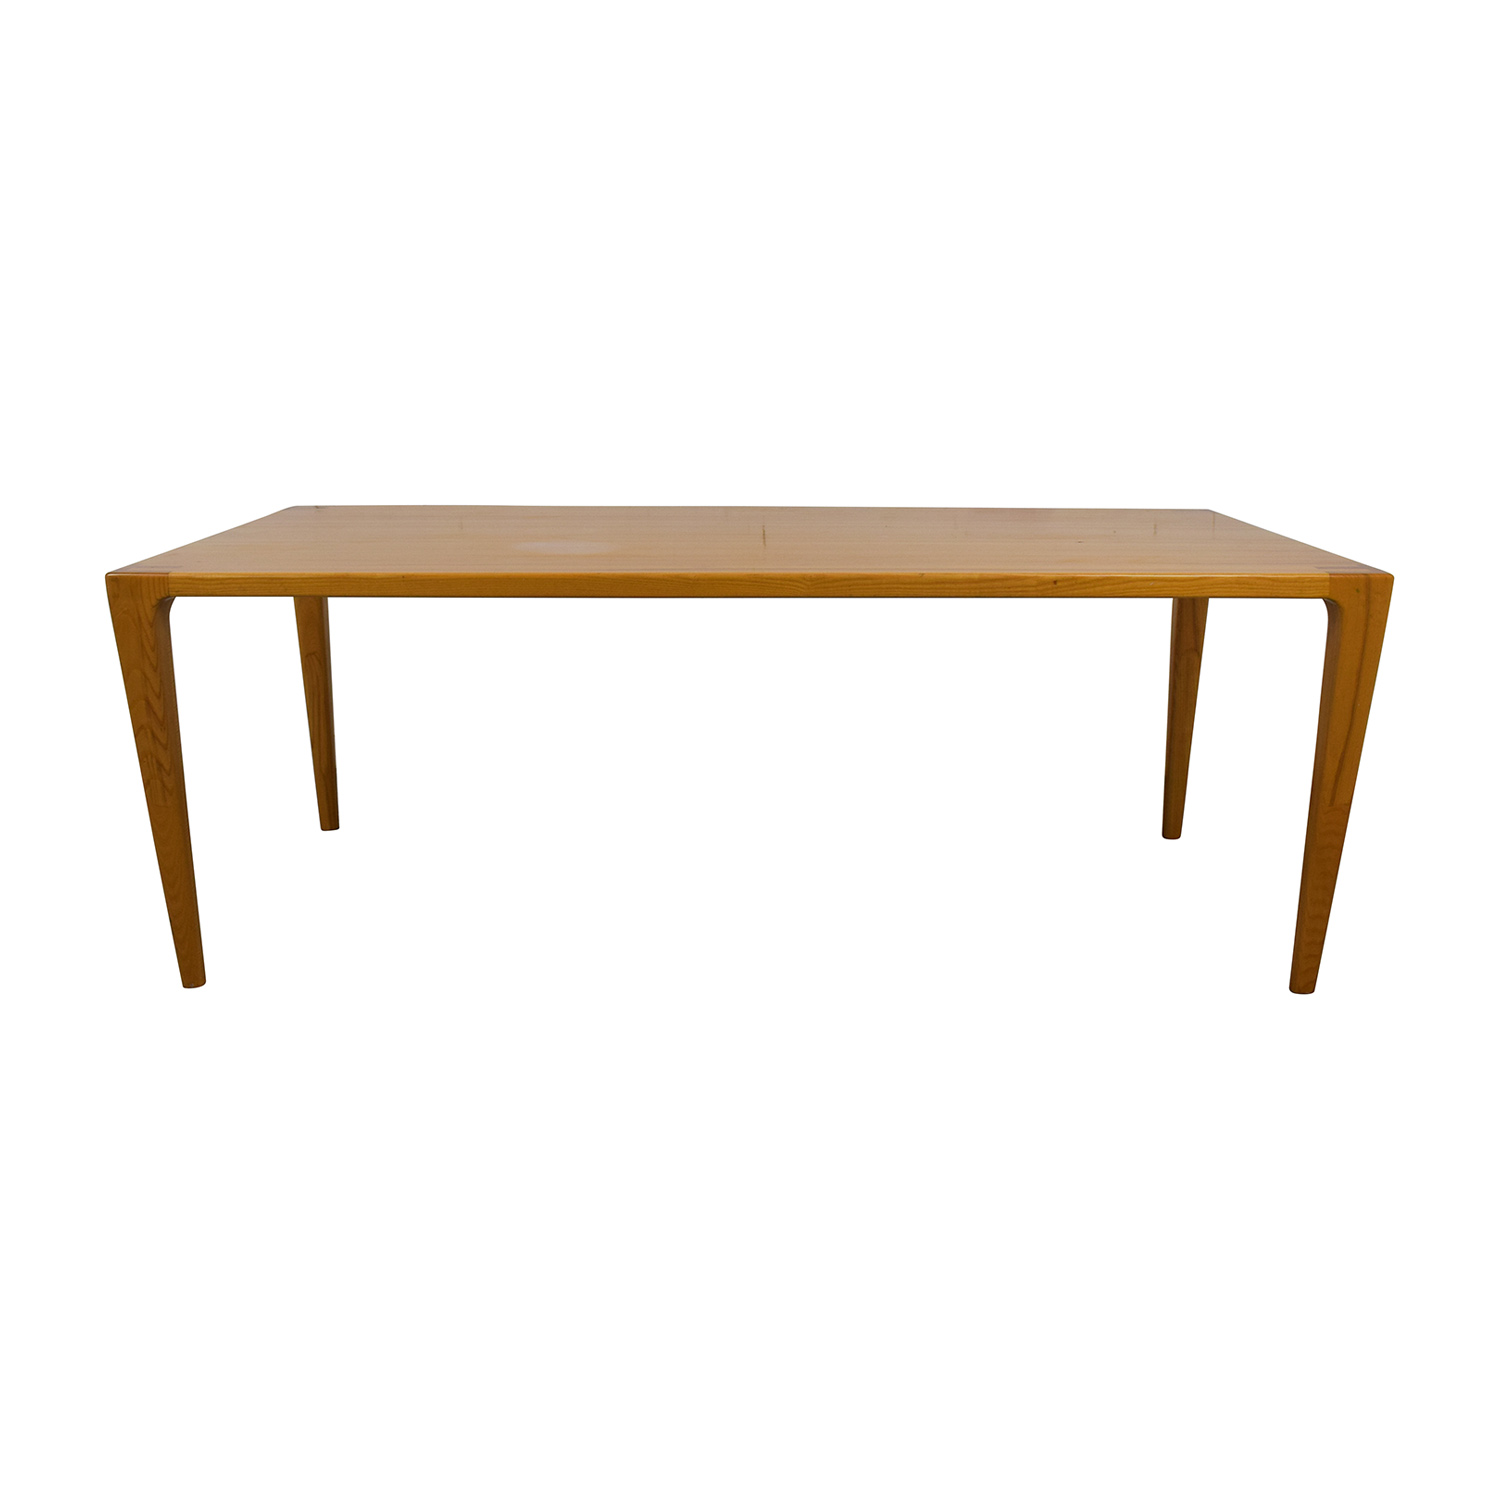 Ralph Pucci International Ralph Pucci International Kevin Walz Dining table coupon